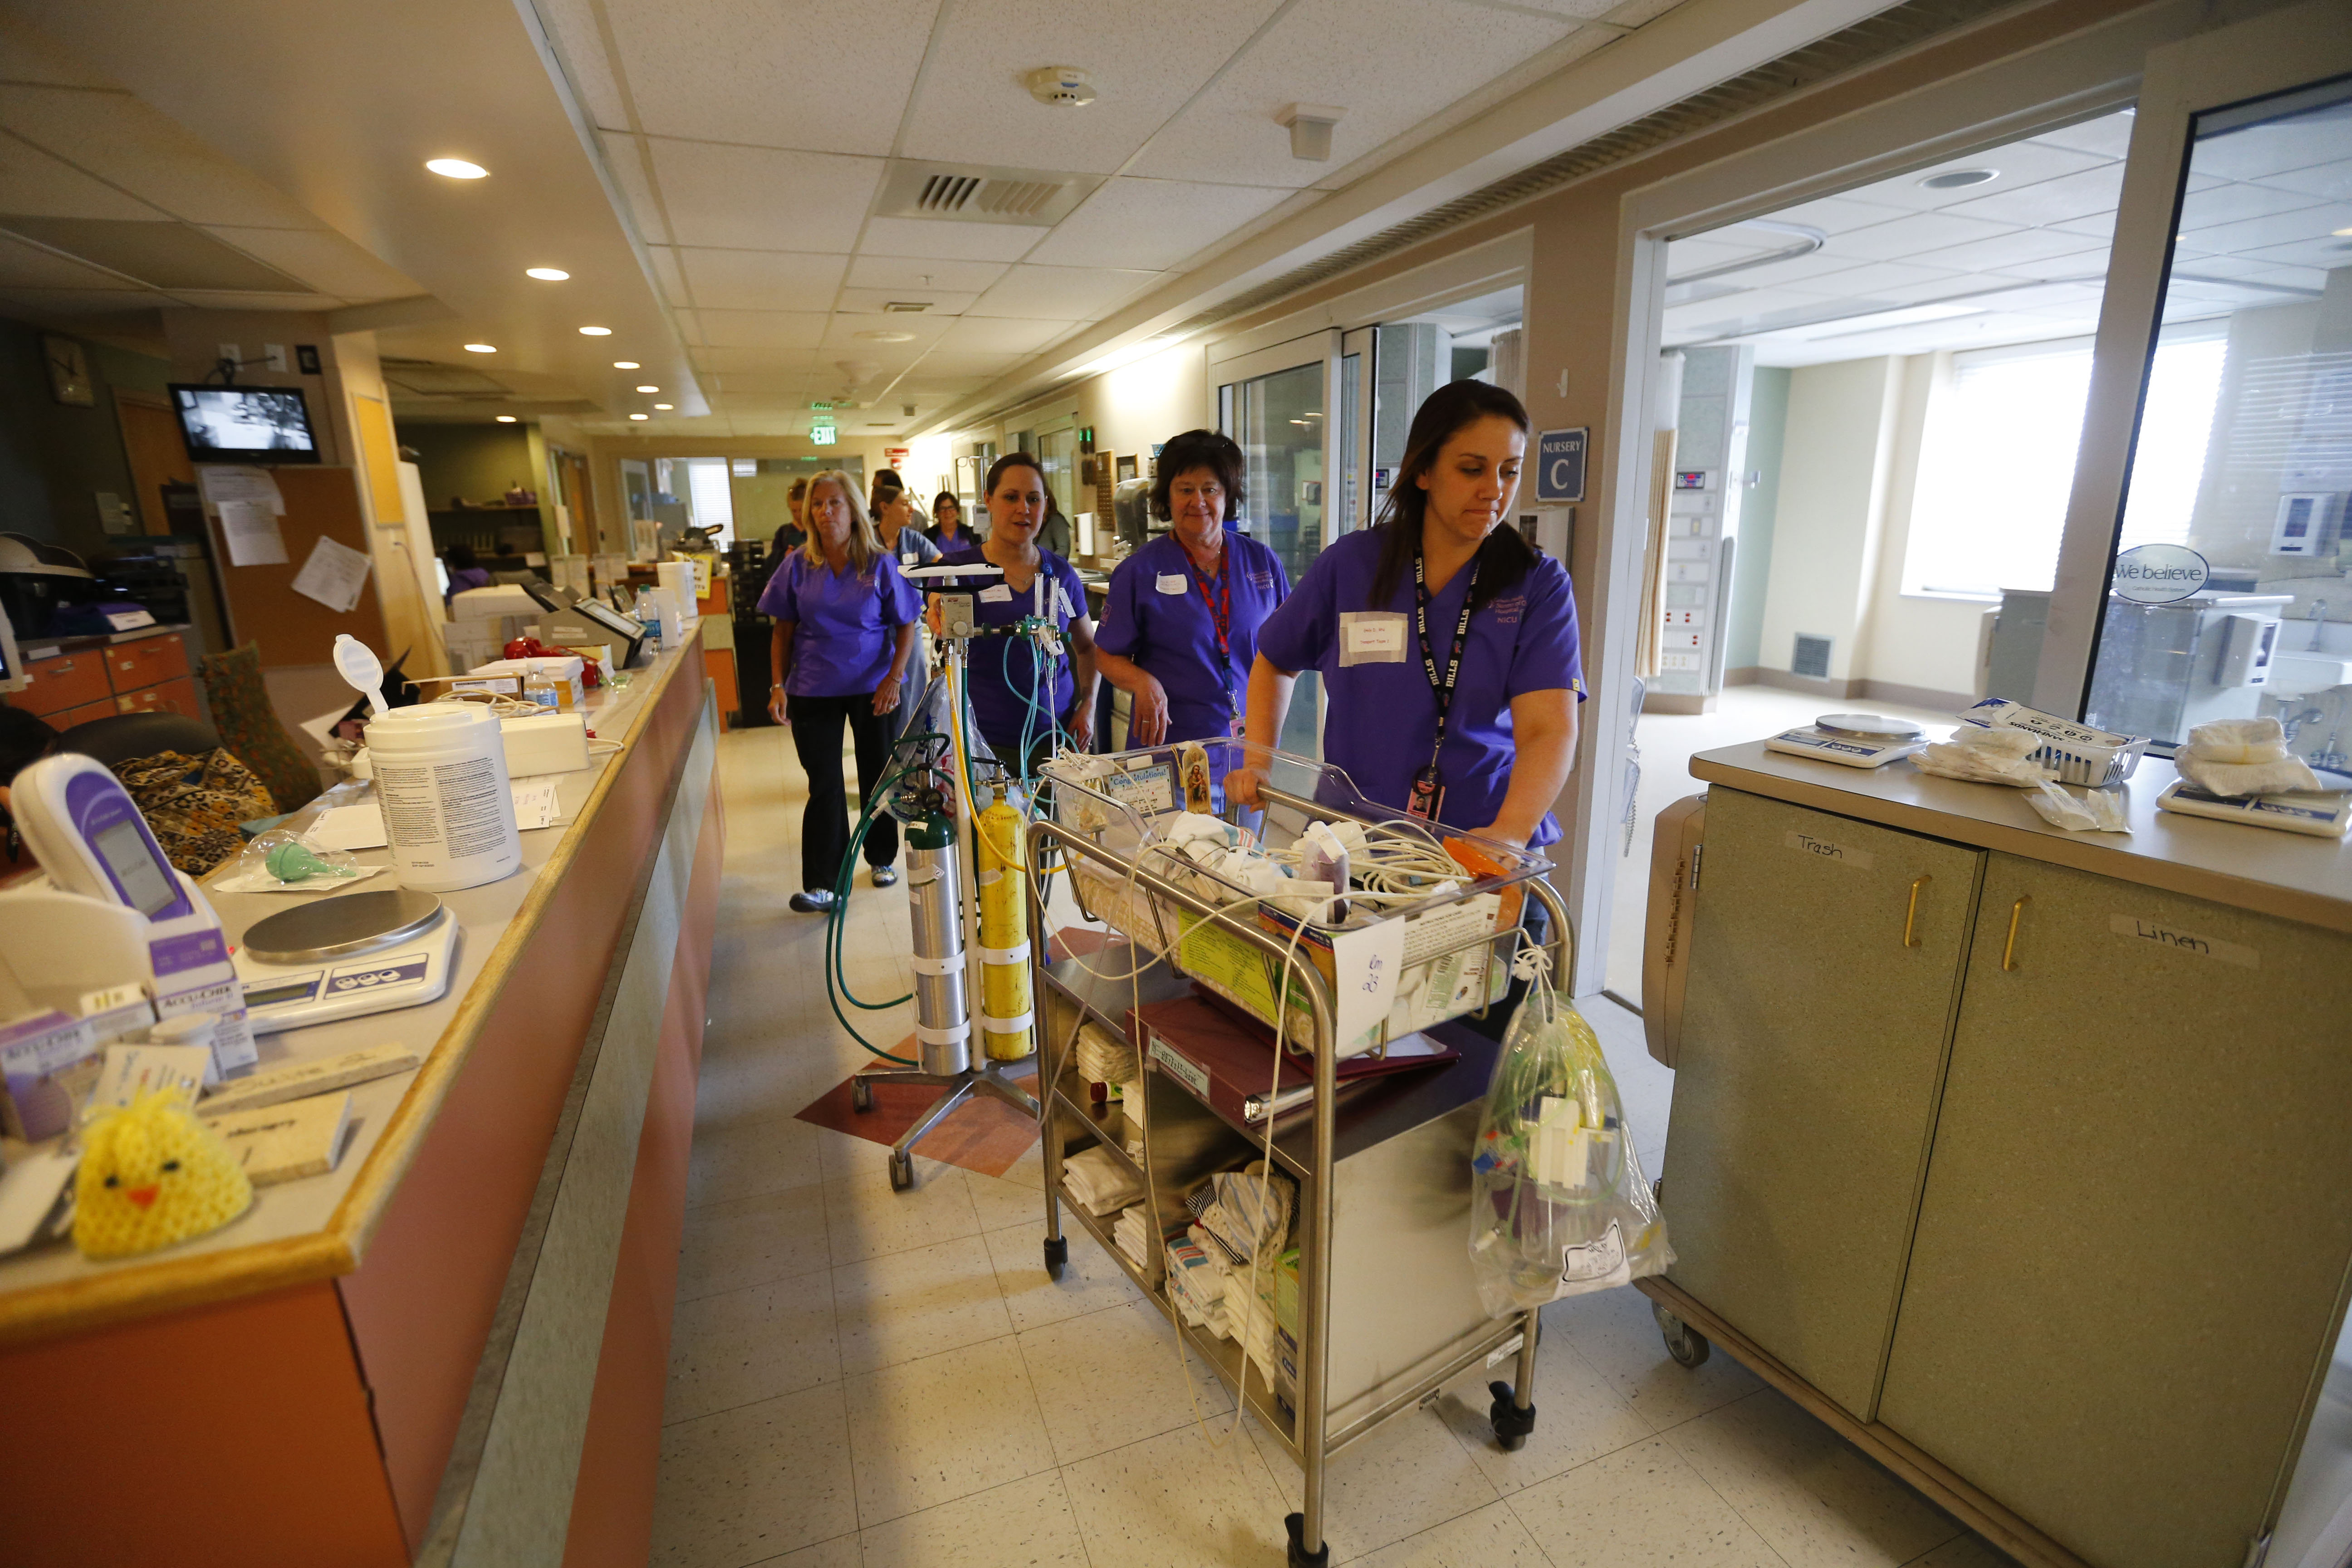 On Tuesday, April 24, 2018, babies and health care staff moved into the new neonatal intensive care unit at Sisters Hospital.